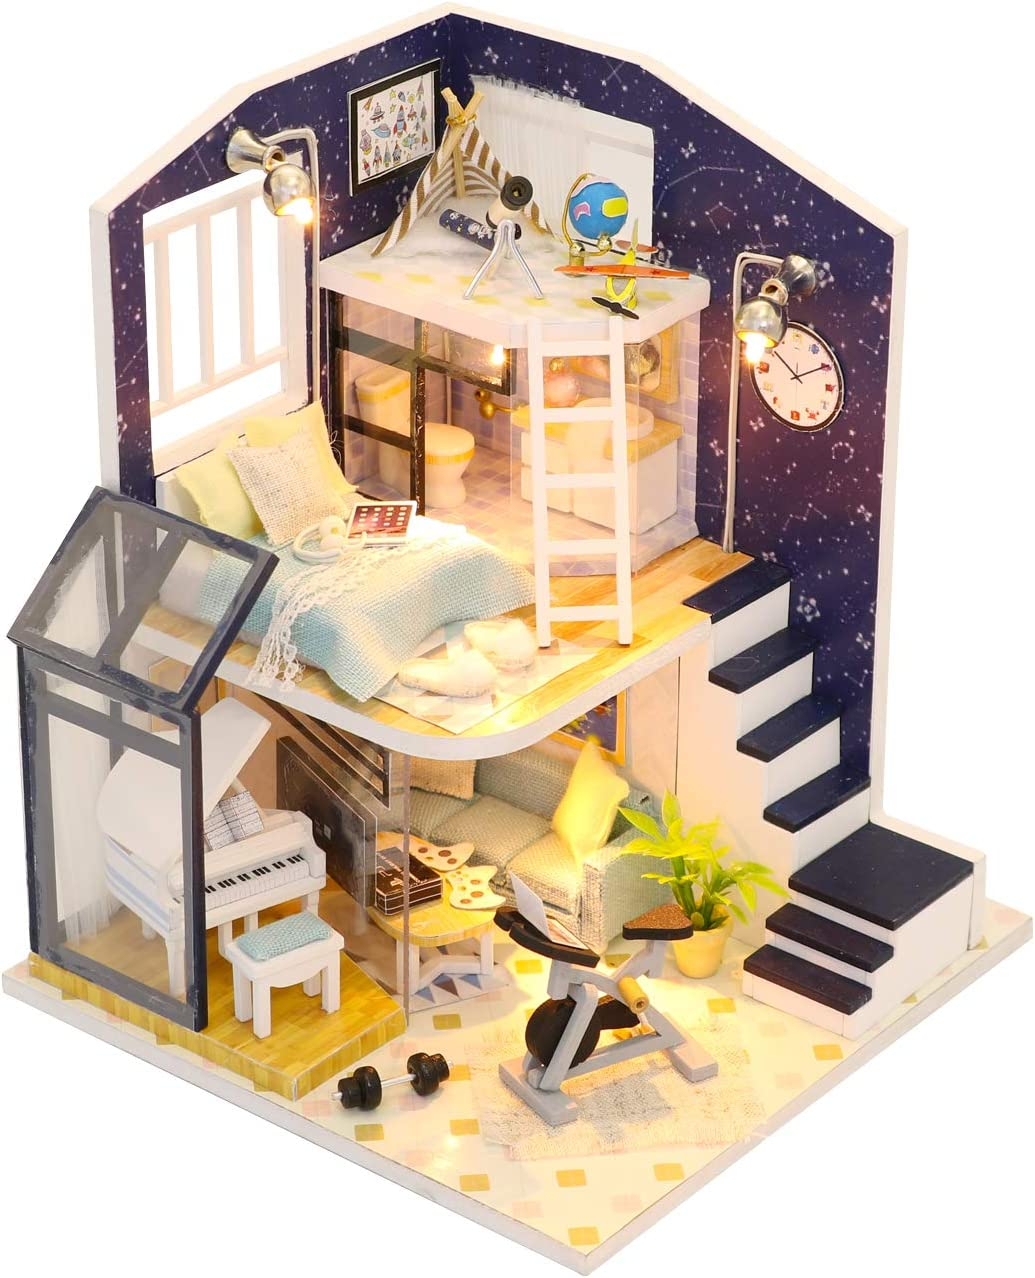 Flever Dollhouse Miniature DIY House Kit Creative Furn Inventory cleanup selling sale with Room 100% quality warranty!